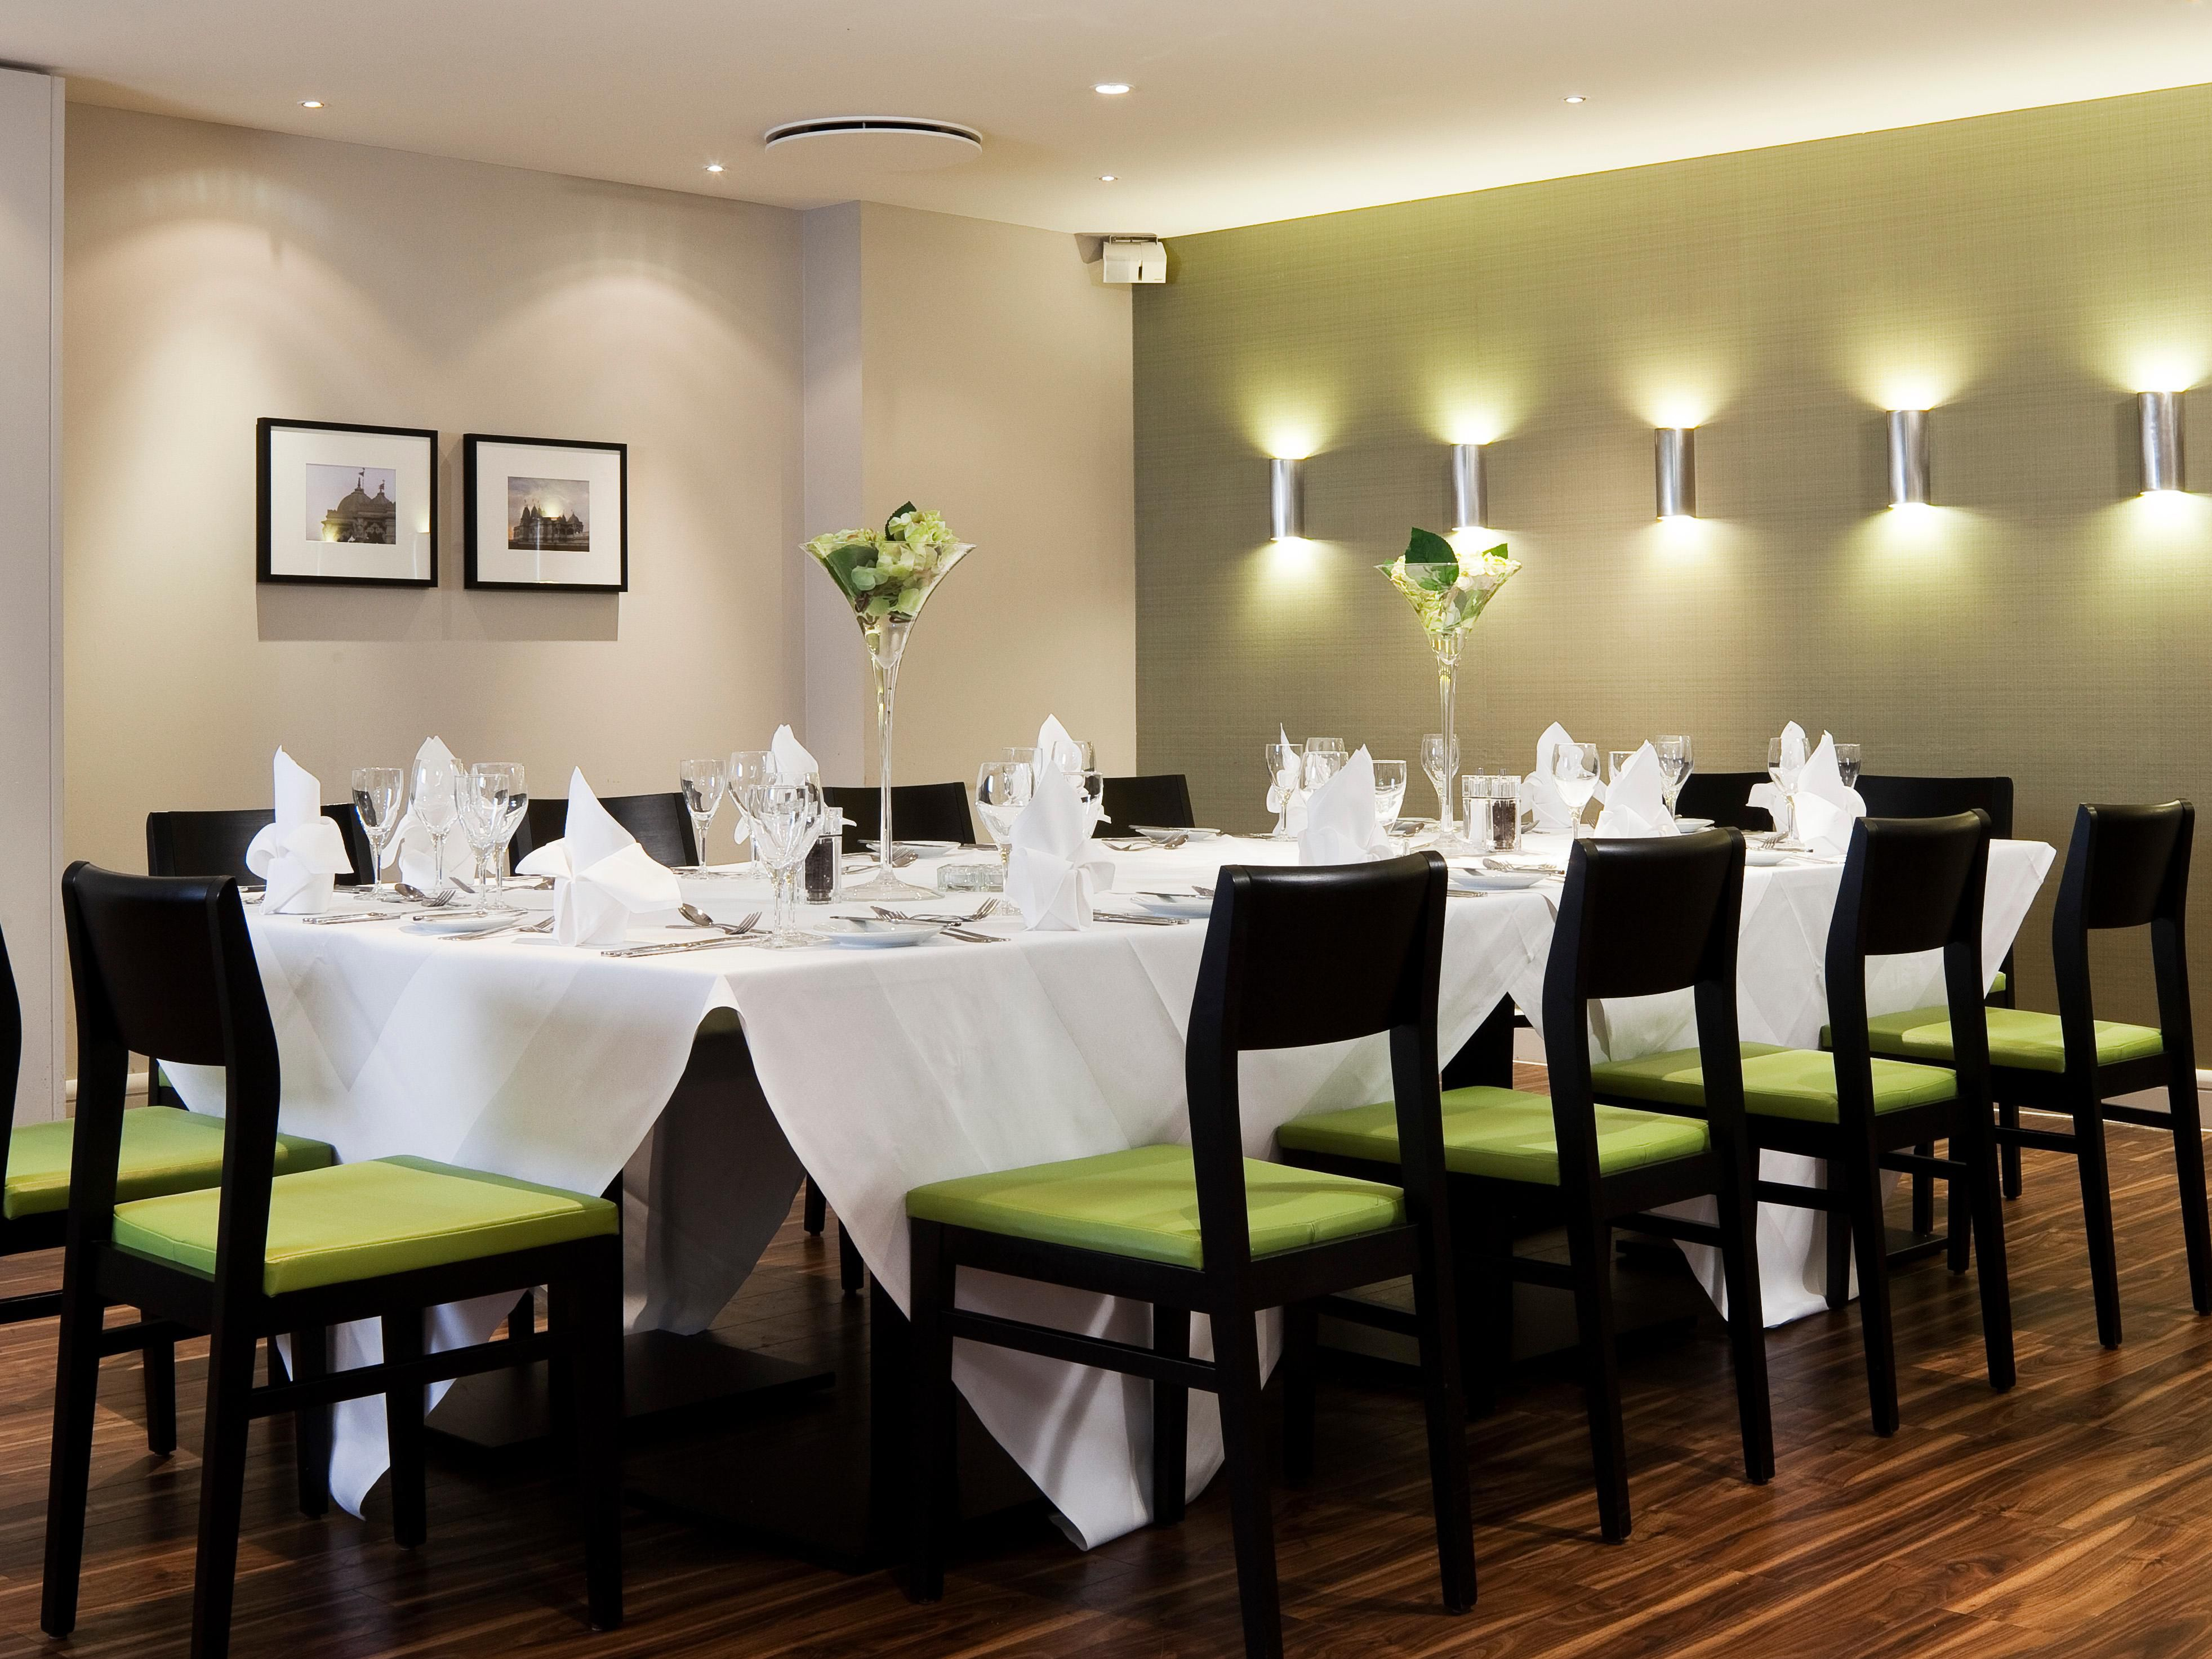 LONNO-holiday inn london haethrwo m4 jct 4-Restaurant